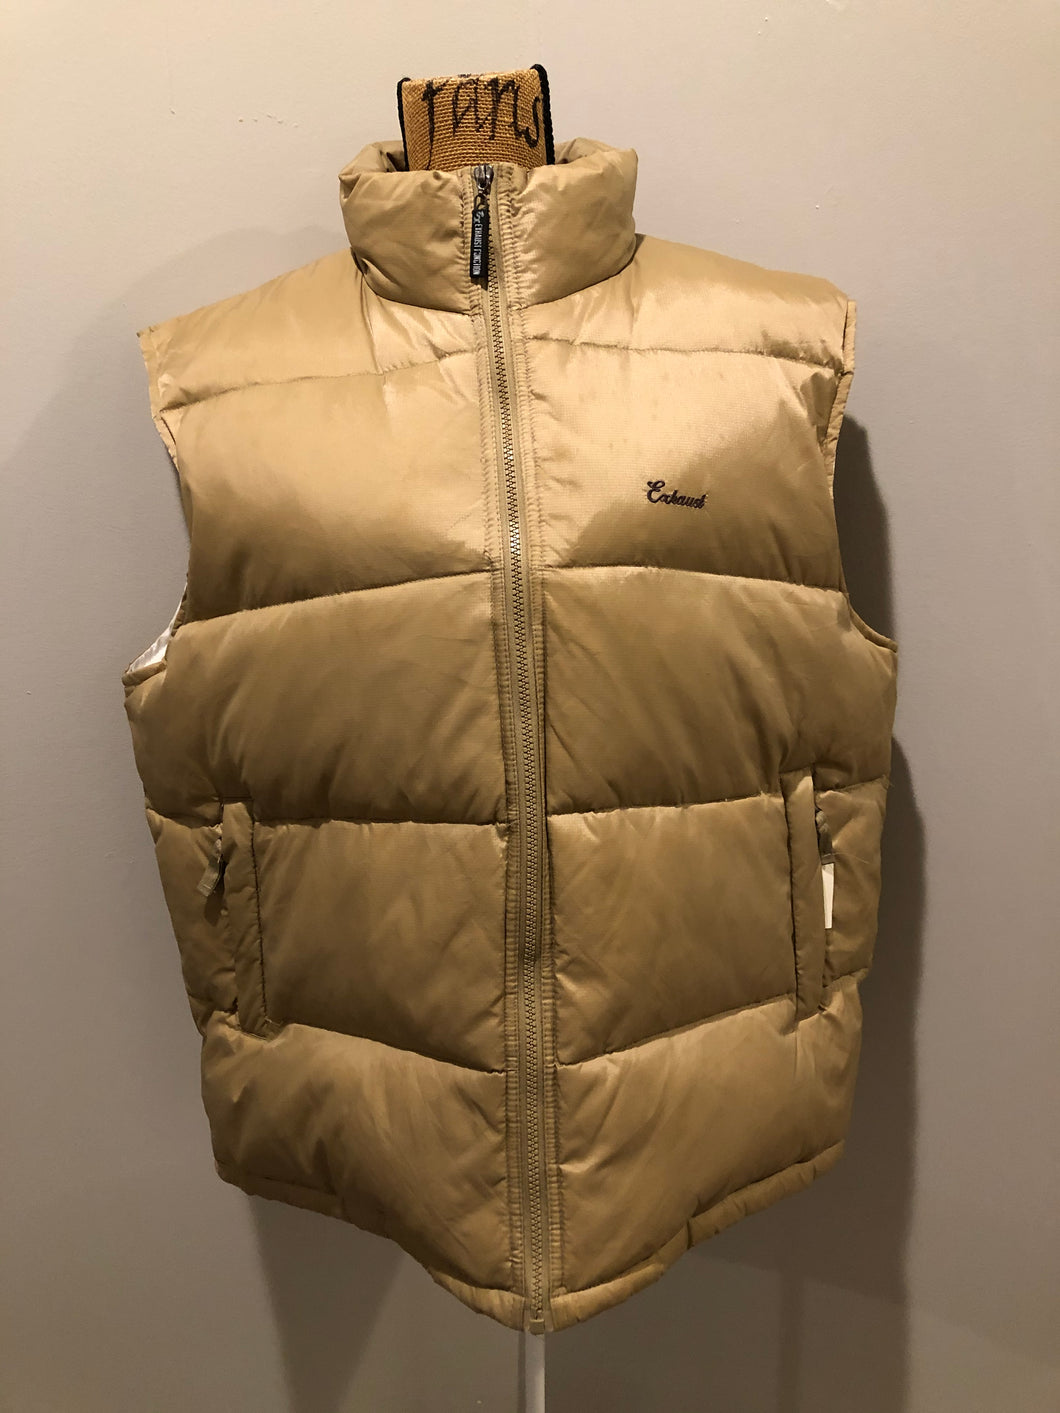 Kingspier Vintage - Exhaust Function tan down filled puffer vest with zipper closure and slash pockets. size XXL.